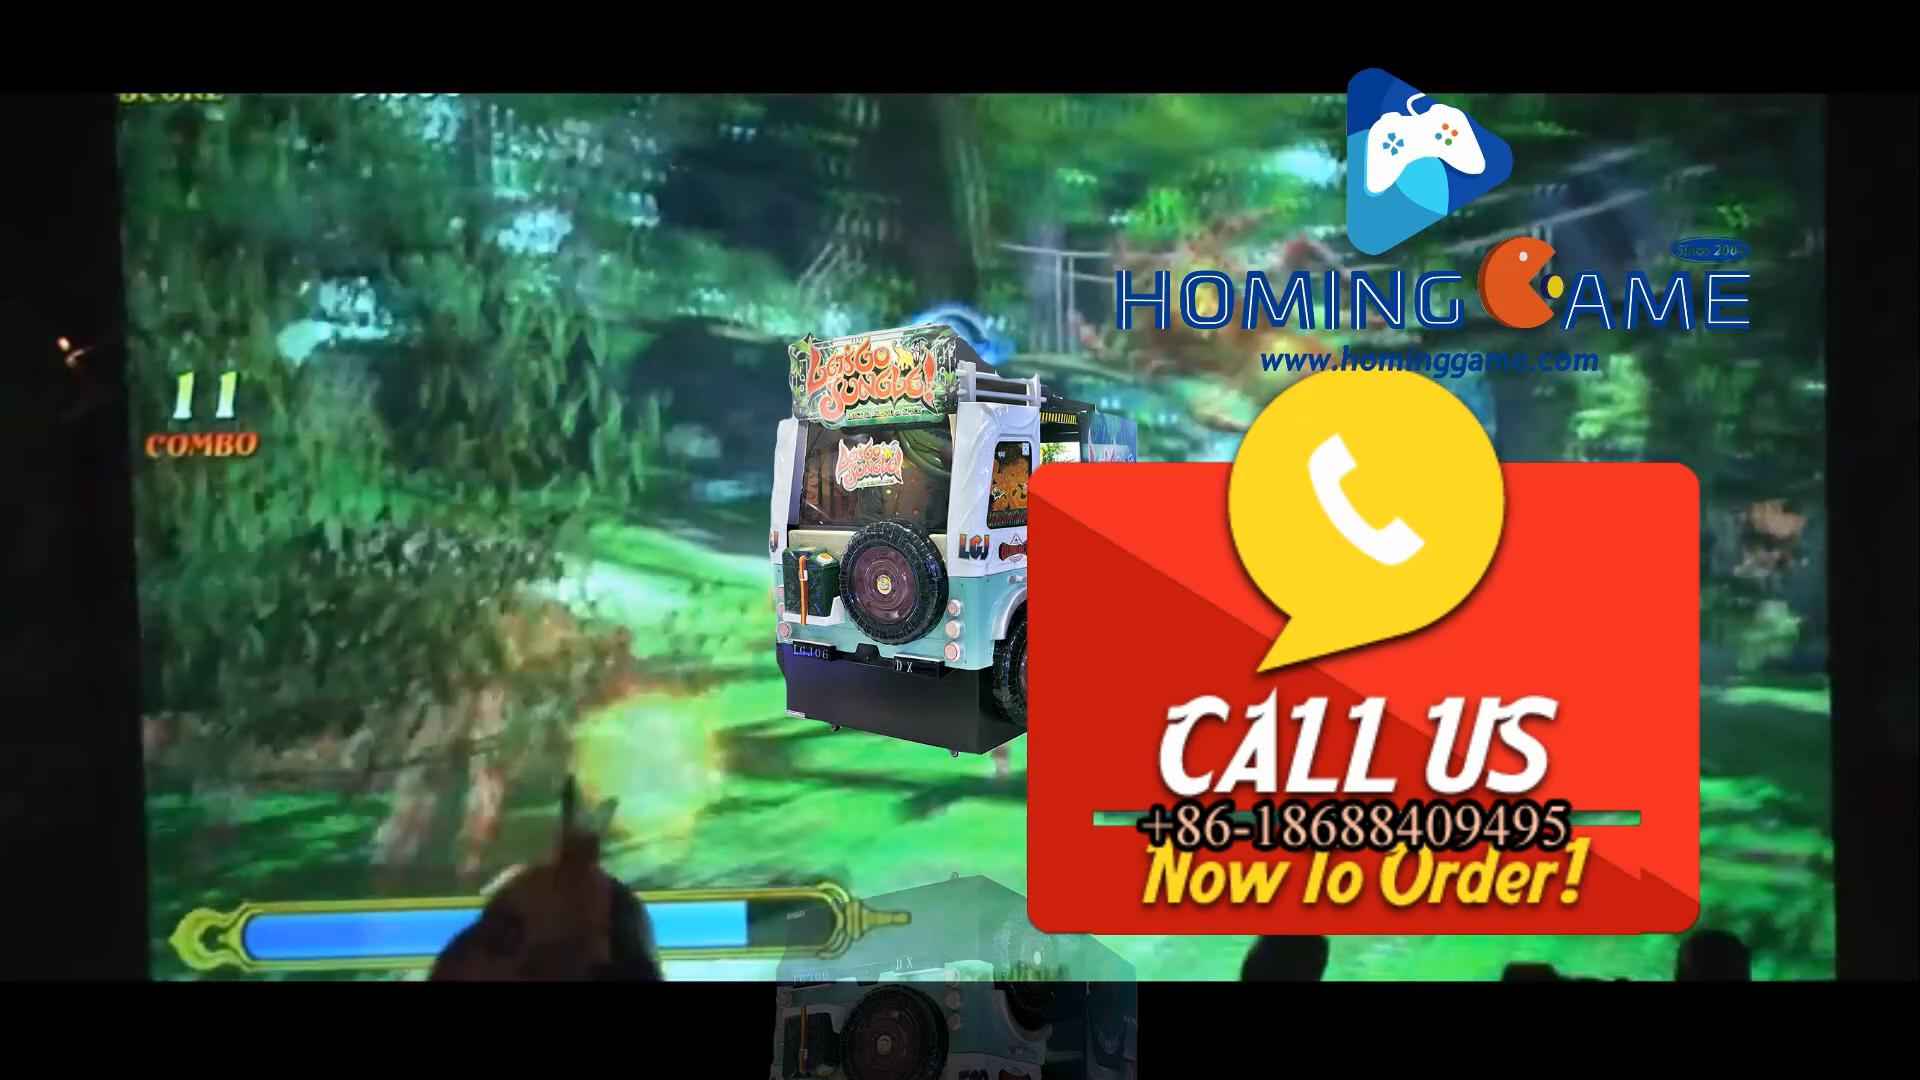 let's go jungle,let's go jungle gun shooting game machine,gun shooting game machine,let's go jungle simulator game machine,let's go jungle video game machine,video game machine,simulator game machine,arcade game machine,coin operated game machine,coin operated gun shooting game machine,gun game machine,game machine,arcade games,amusement park game machine,amusement park game equipment,game equipment,indoor game machine,electrical game machine,coin games,arcade game equipment,electrical game,video arcade game machine,rambo gun shooting game machine,aliens gun shooting game machine,hominggame,hominggame gun shooting game machine,sega games,sega let's go jungle game machine,simulator game,video game,coin operated simulator  game machine,simulator arcade game machine,www.gametube.hk,gametube.hk